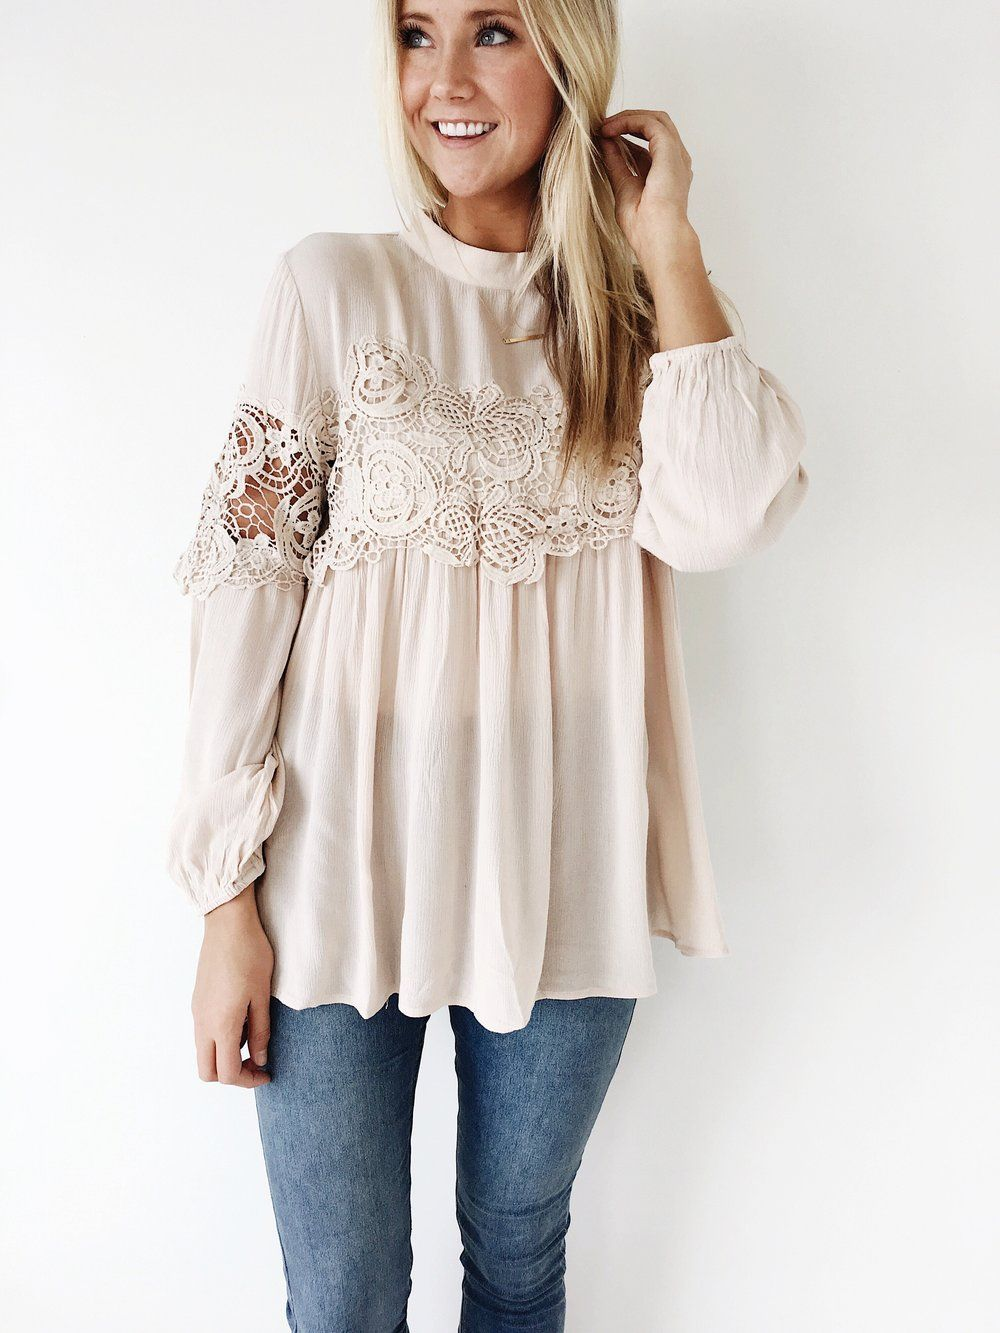 8ded2ed37 Hopeless Romantic Blouse | ROOLEE | Cute blouses/ tees | Fashion ...